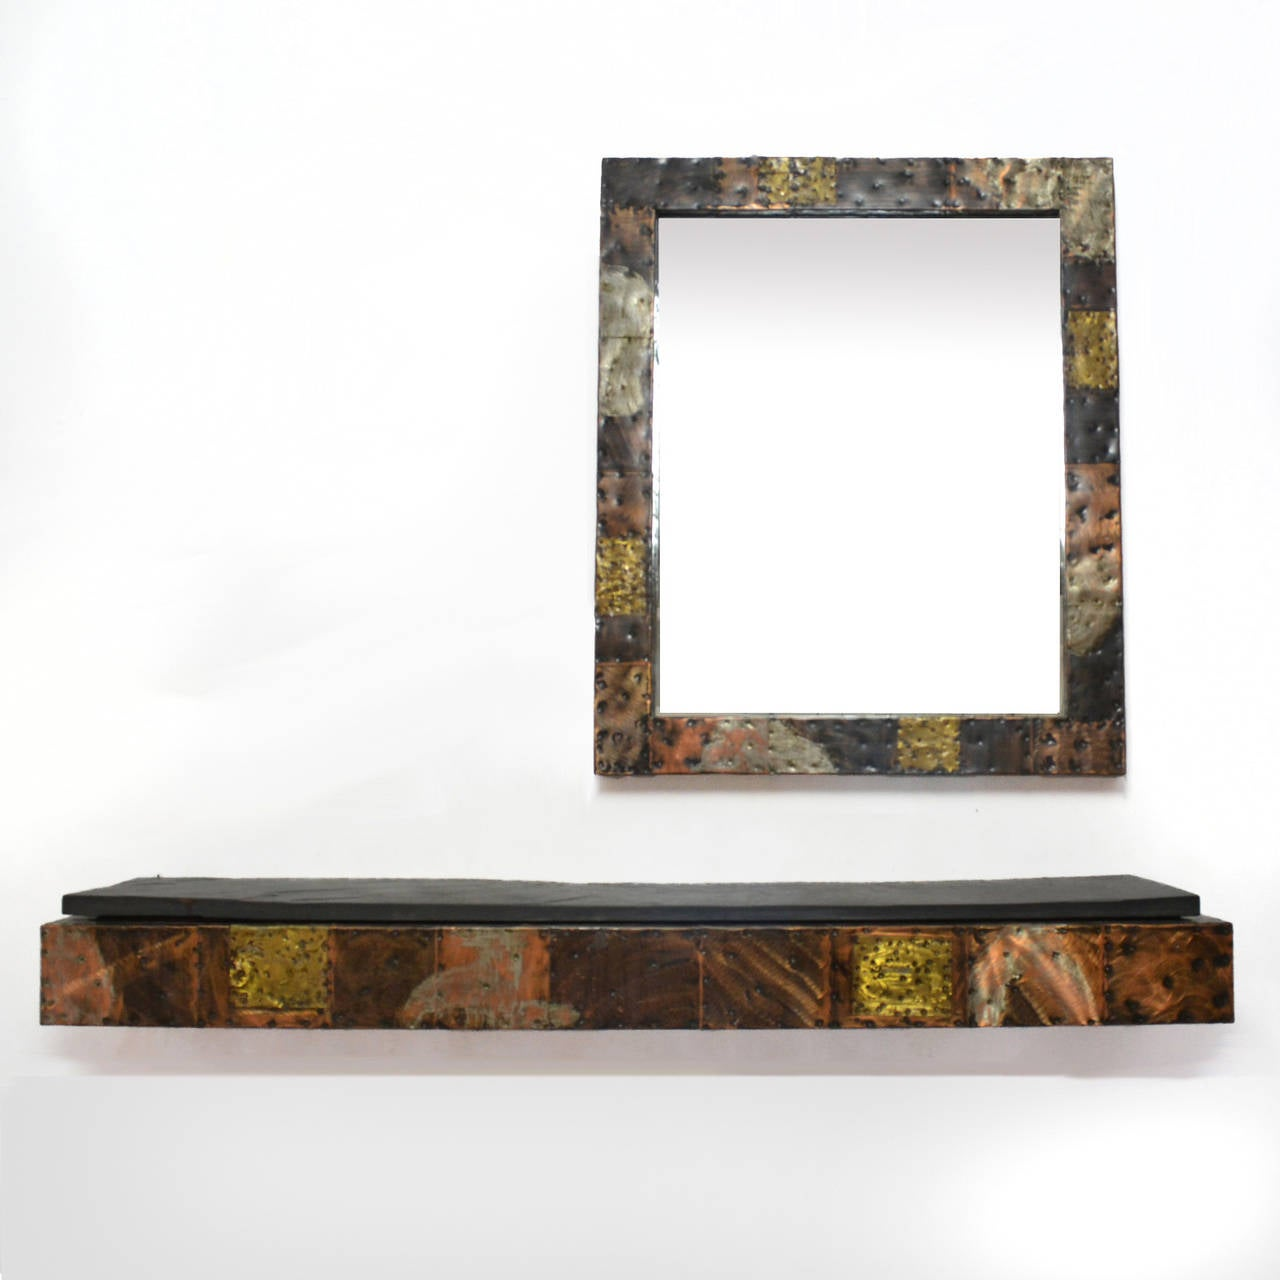 Paul Evans Patchwork Mirror and Wall-Mounted Console 3